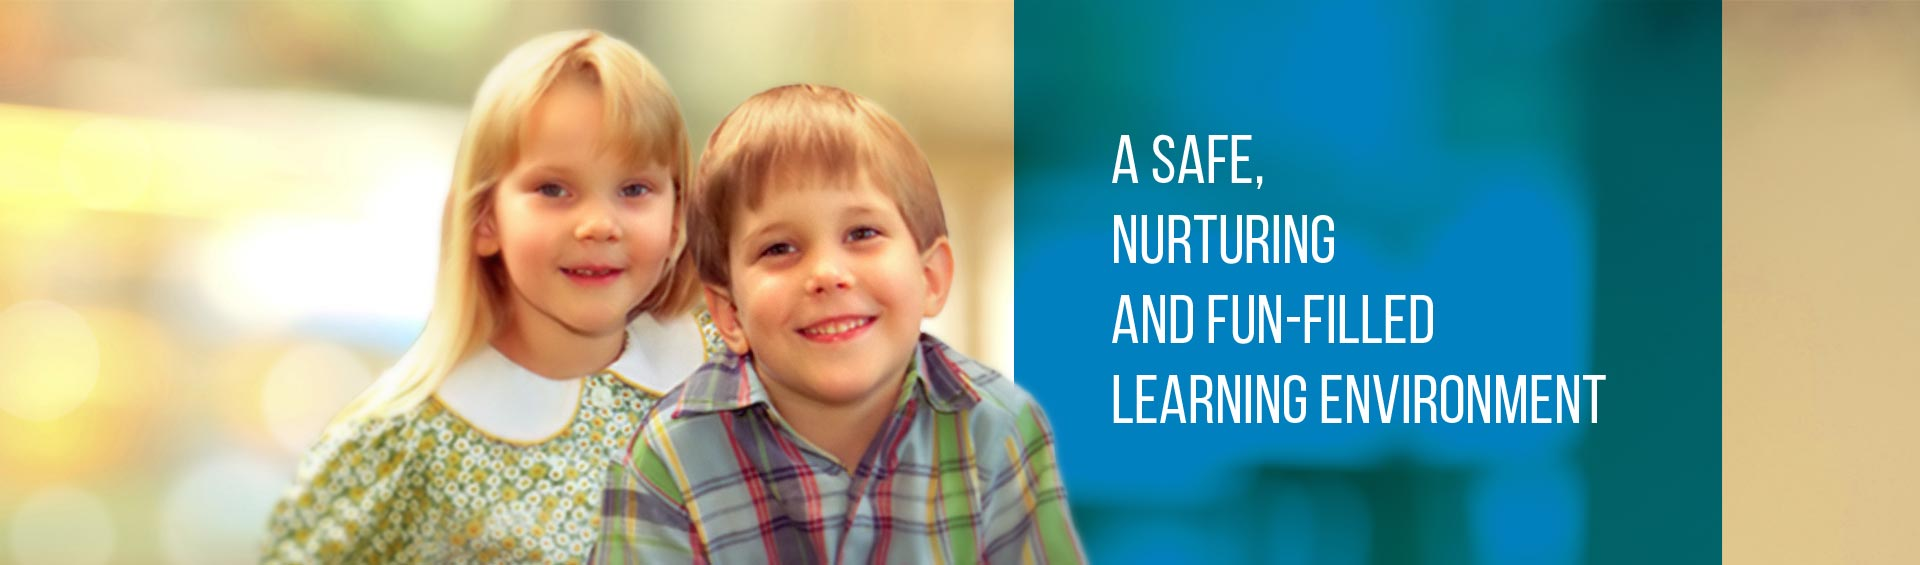 A Safe, Nurturing and fun-filled learning environment